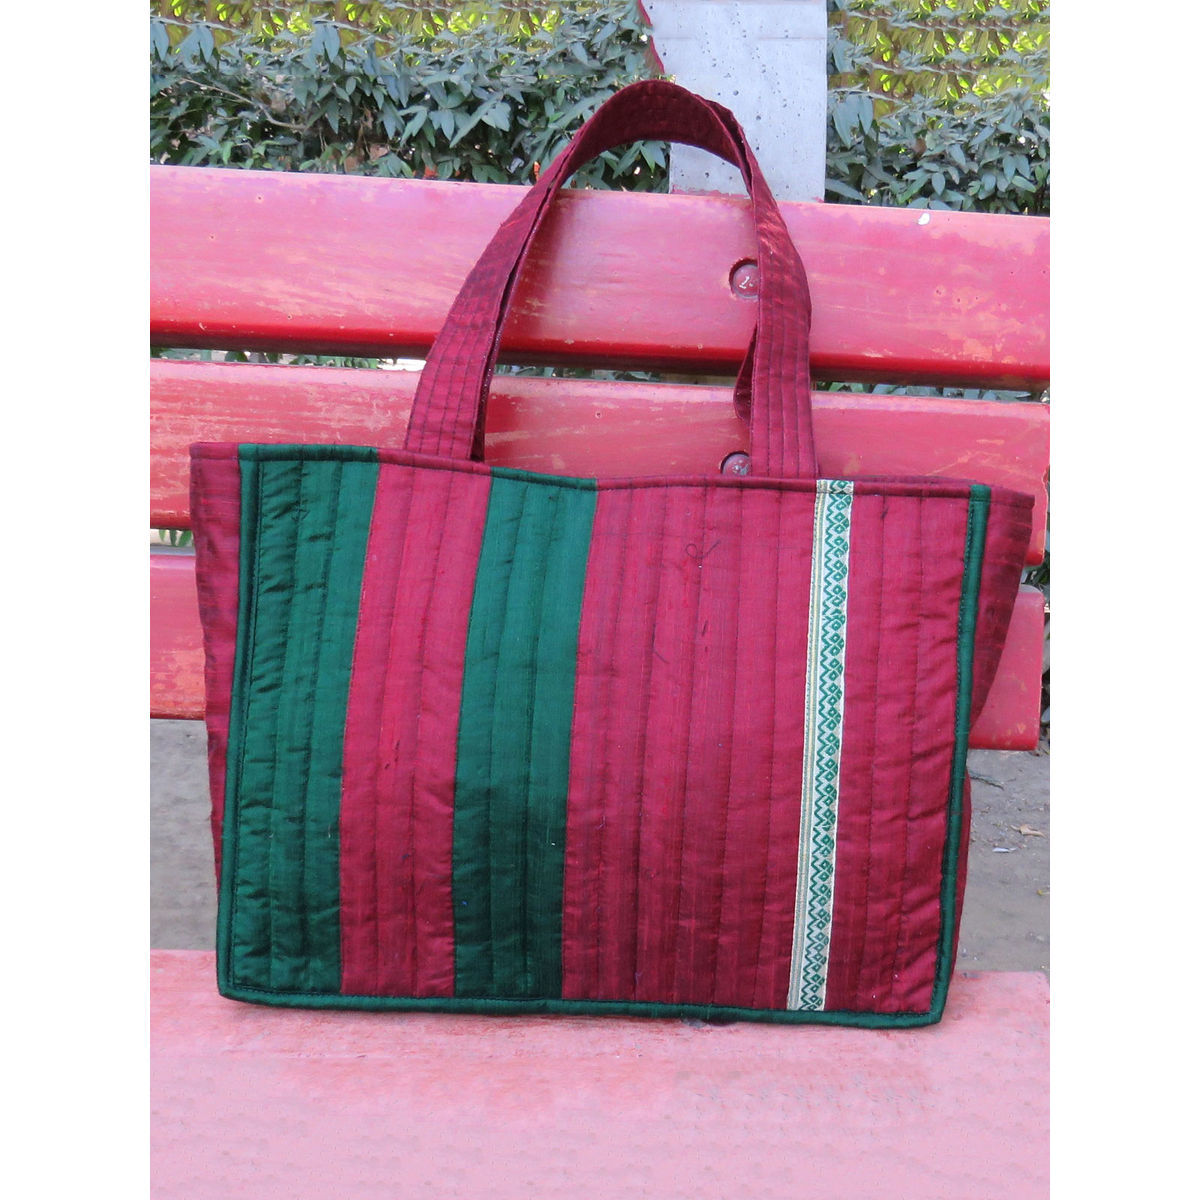 Maroon dupion silk quilted bag